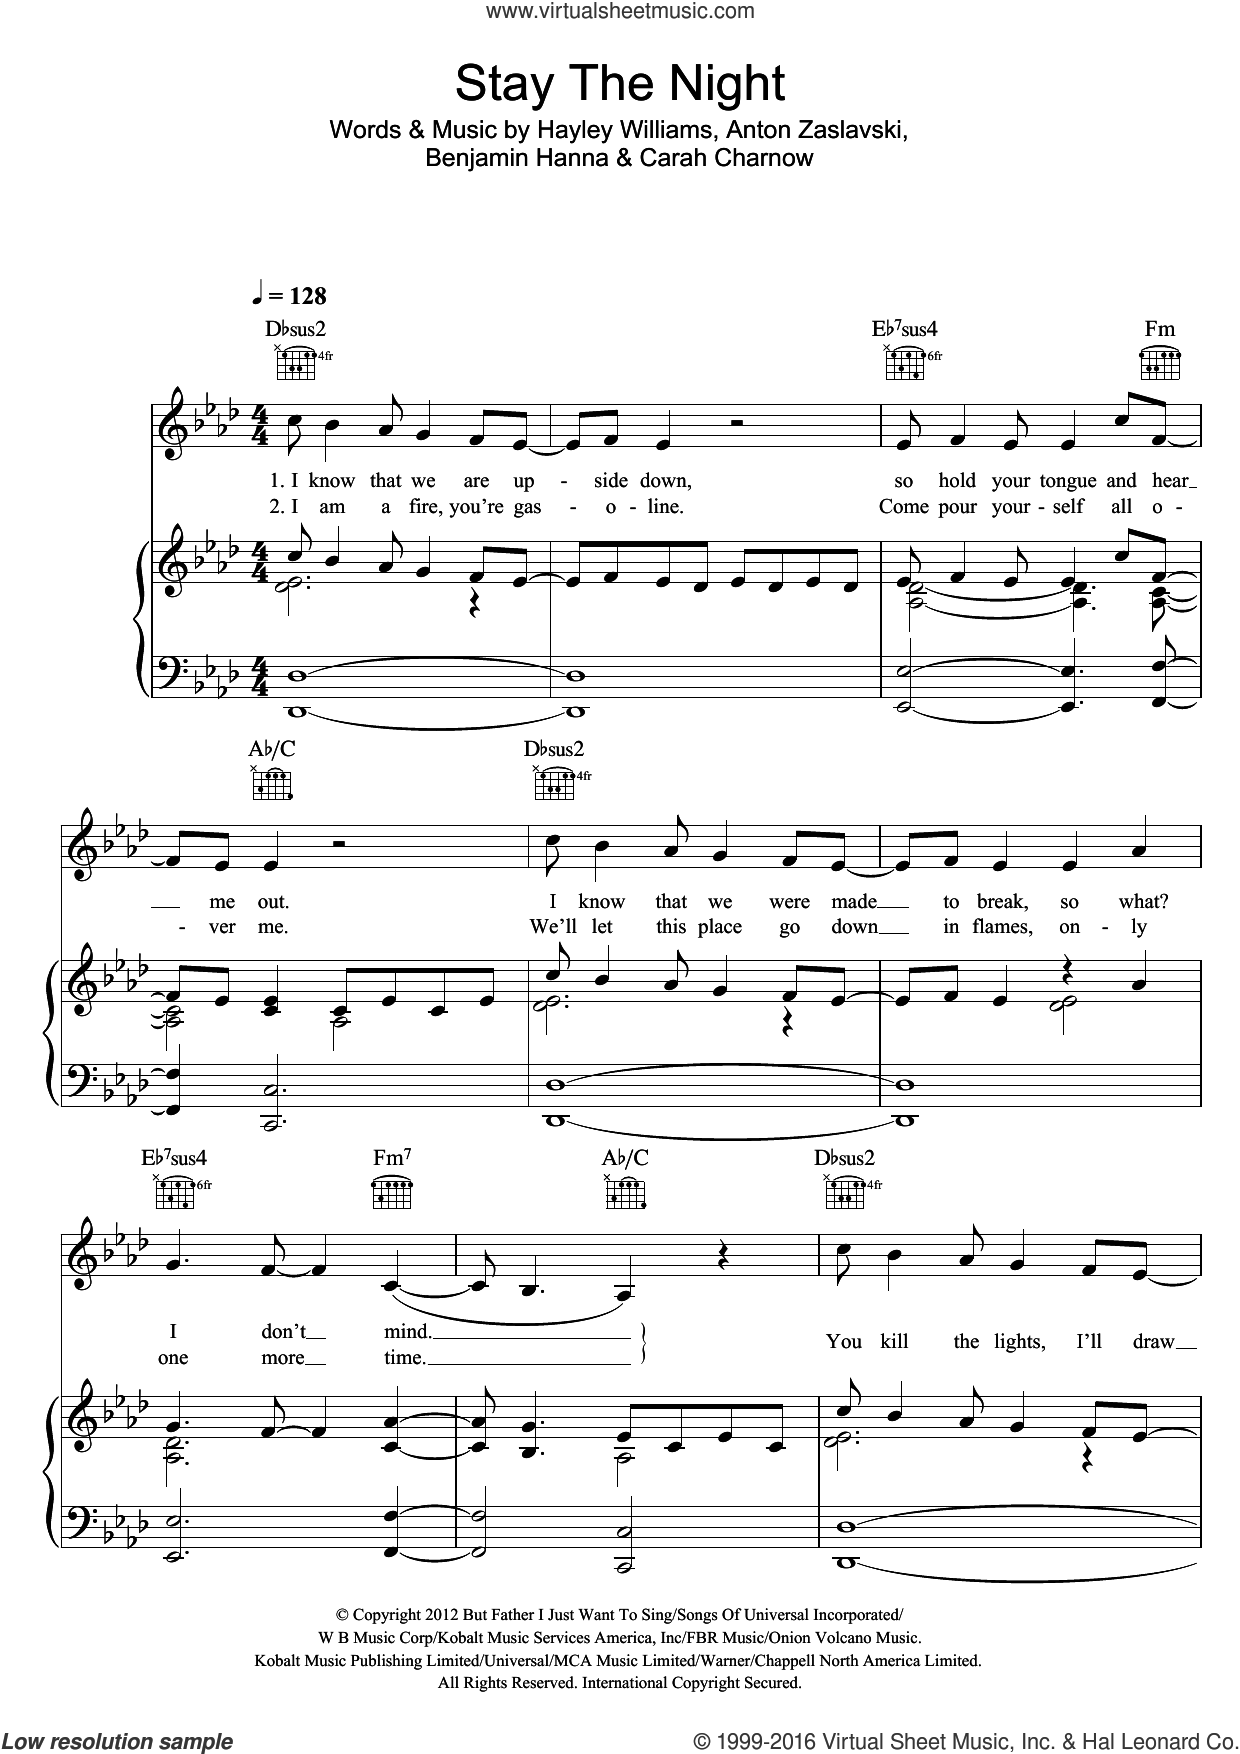 Stay The Night sheet music for voice, piano or guitar by Anton Zaslavski and Hayley Williams. Score Image Preview.